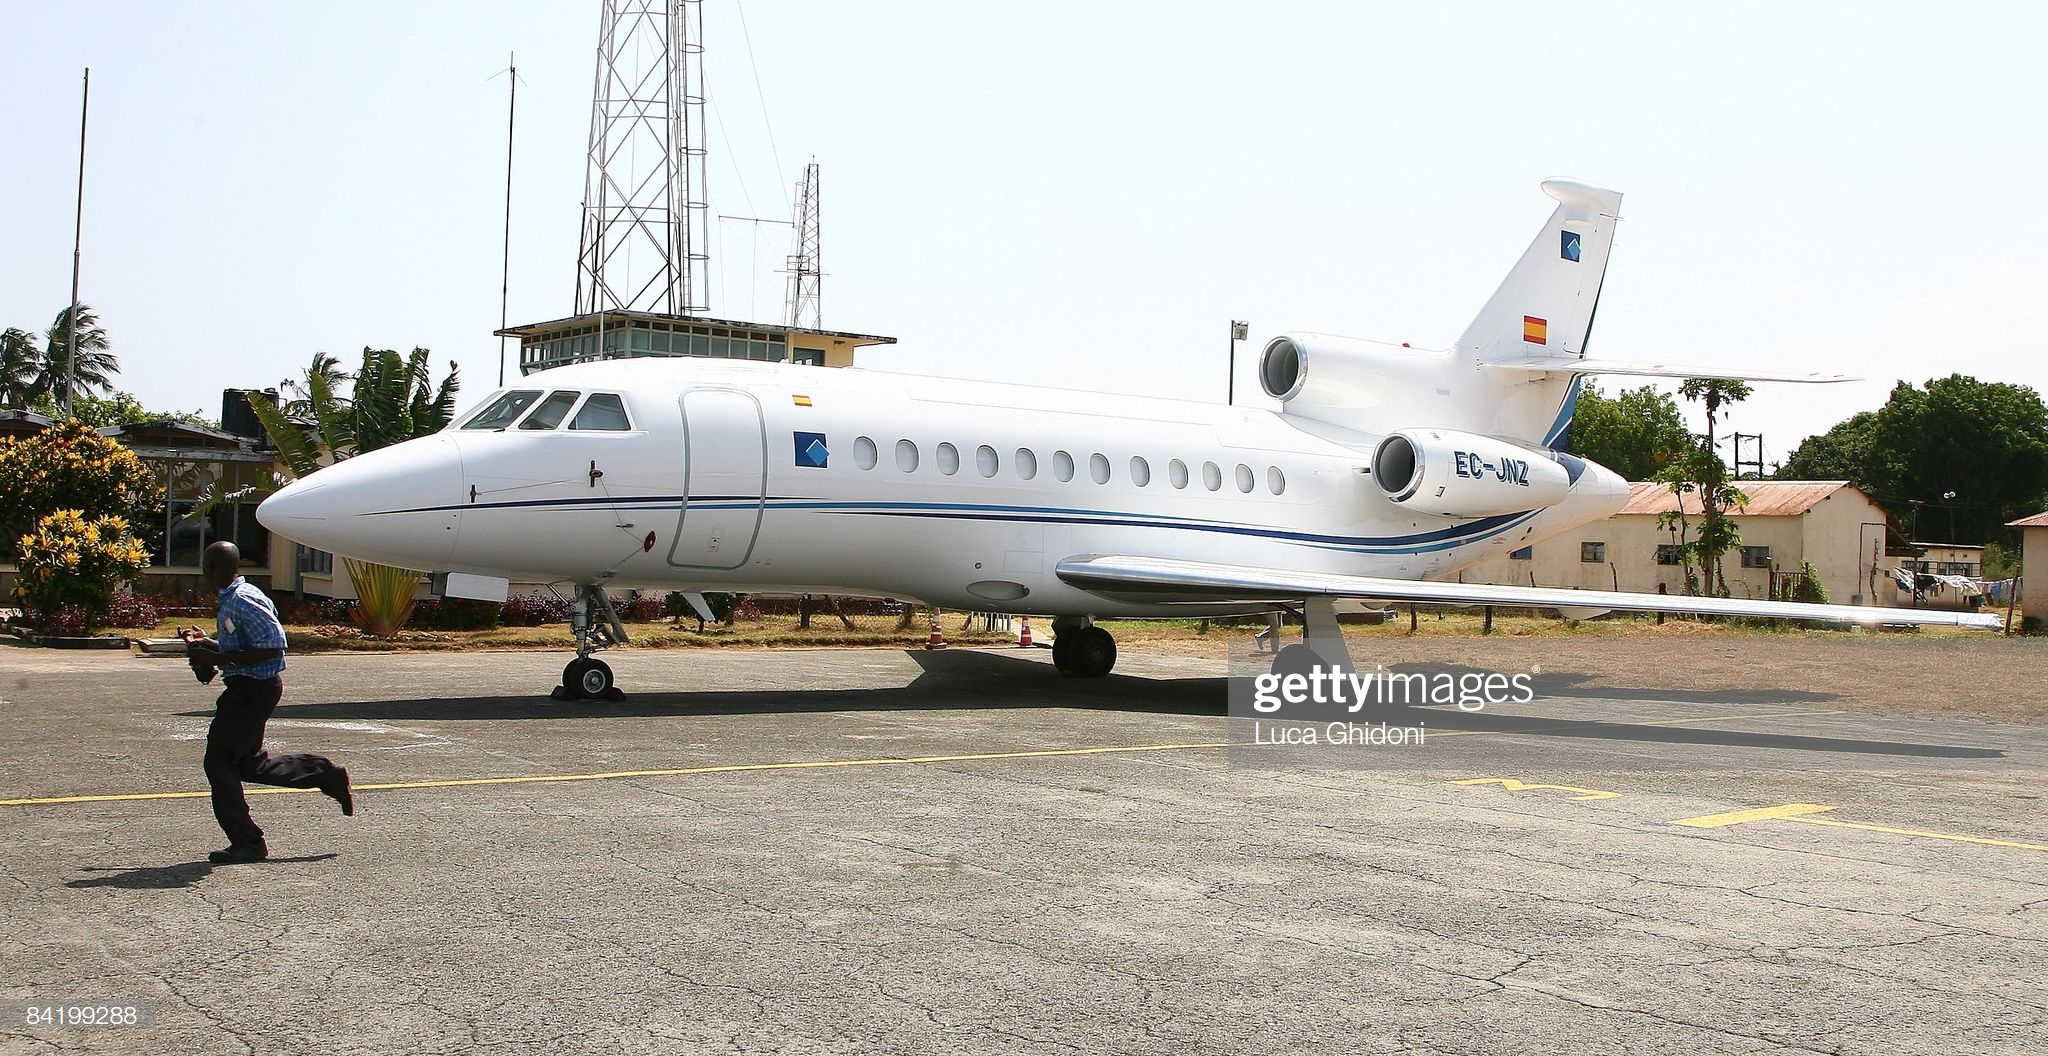 frenando alonso private jet most influential people to have visited Malindi Kenya - The 5 most Influential people who have visited Malindi Kenya